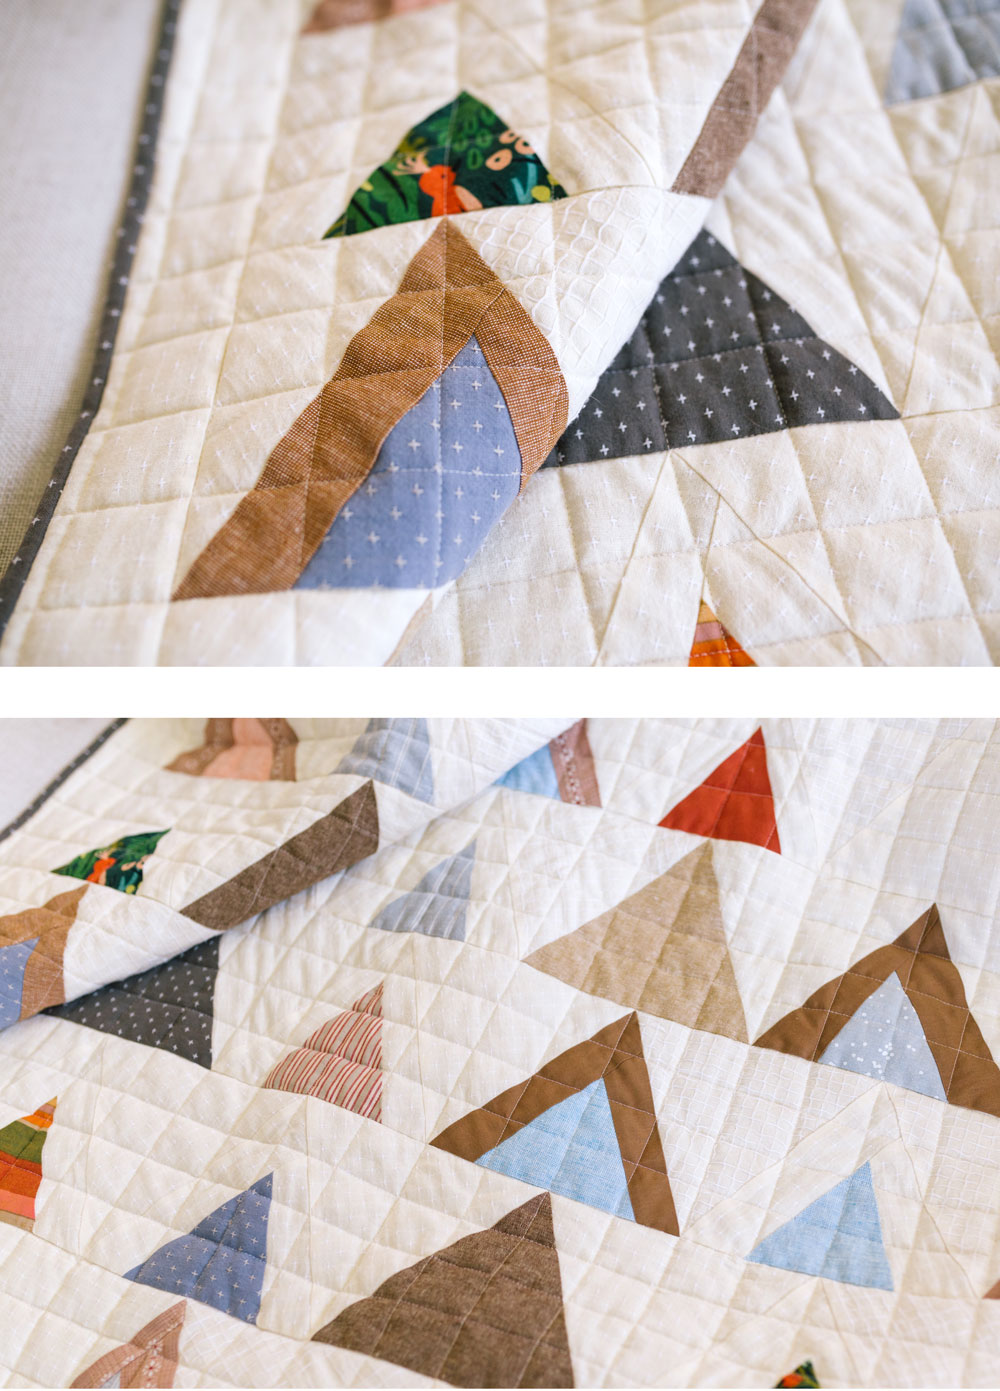 Join the Mod Mountains quilt pattern sew along! Learn new quilting skills and win weekly prizes as an online sewing community.